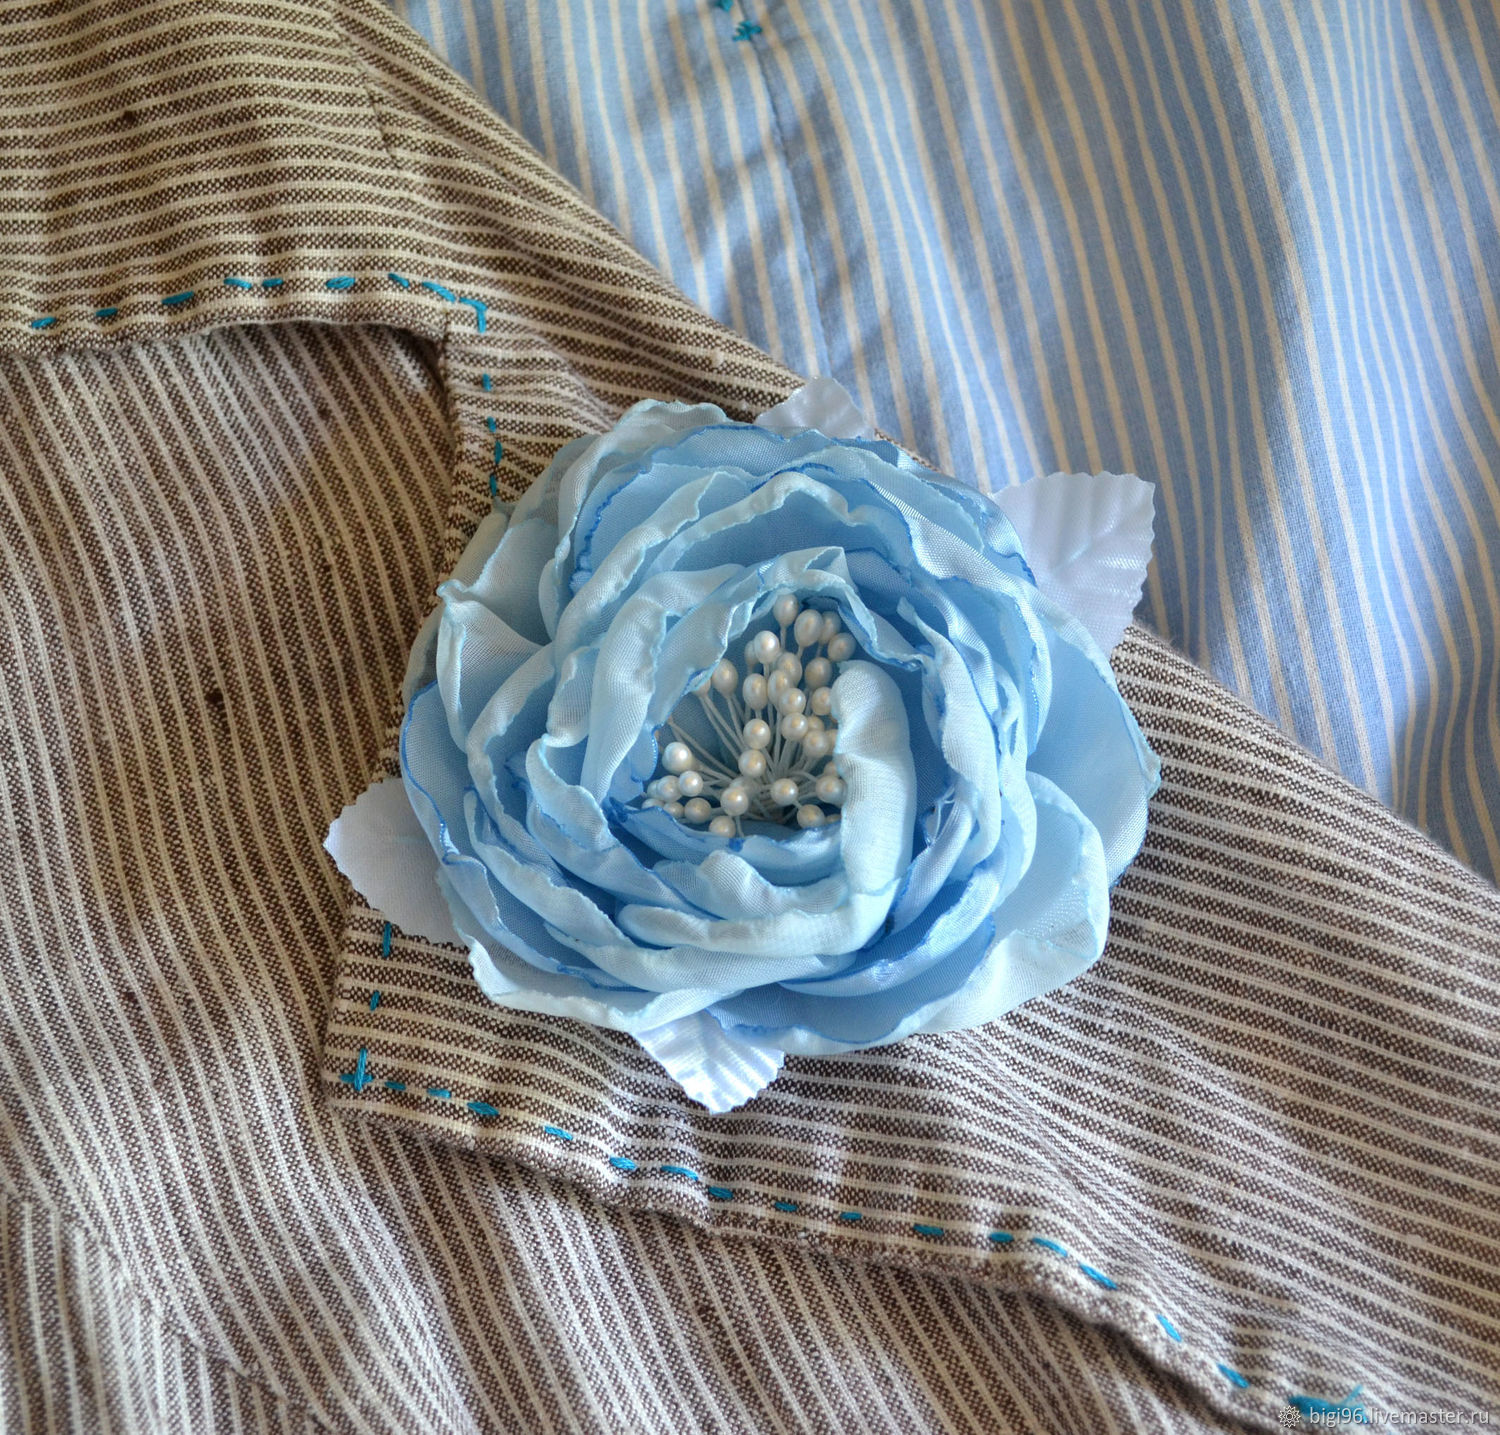 Rose brooch 'Blue', Brooches, Moscow,  Фото №1